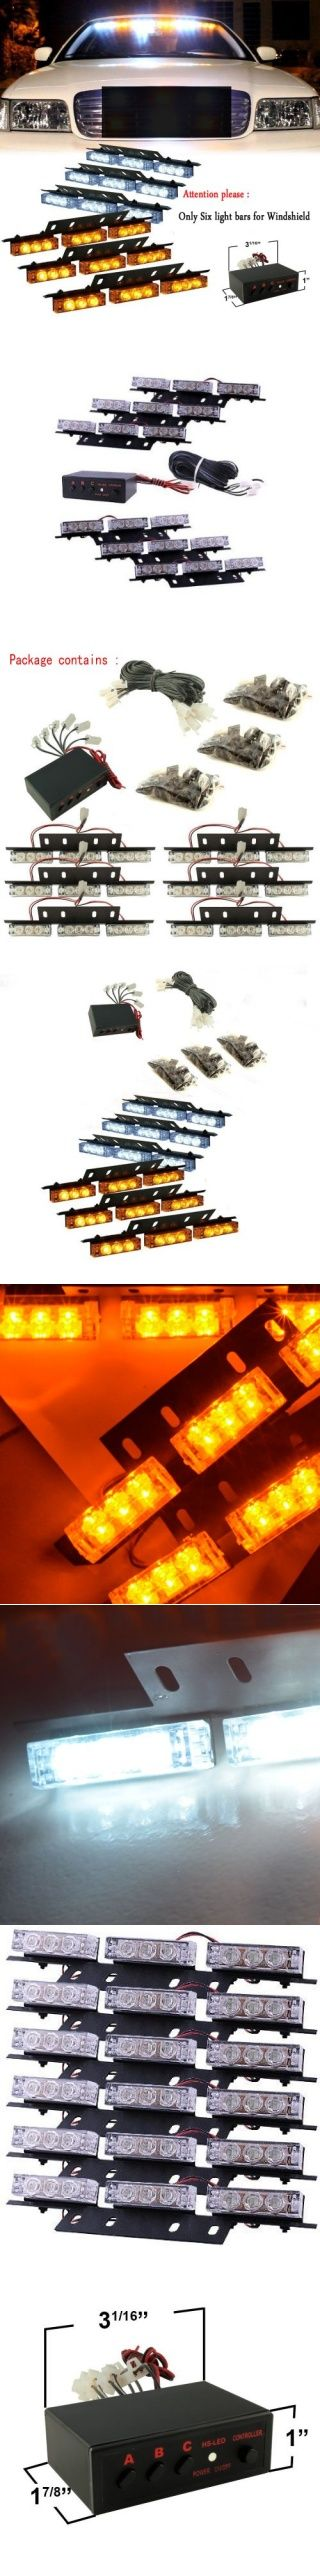 Nilight(TM) White And Amber 54 X Ultra Bright LED Emergency Warning Use Flashing Strobe Lights Bar For Windshield High Quality